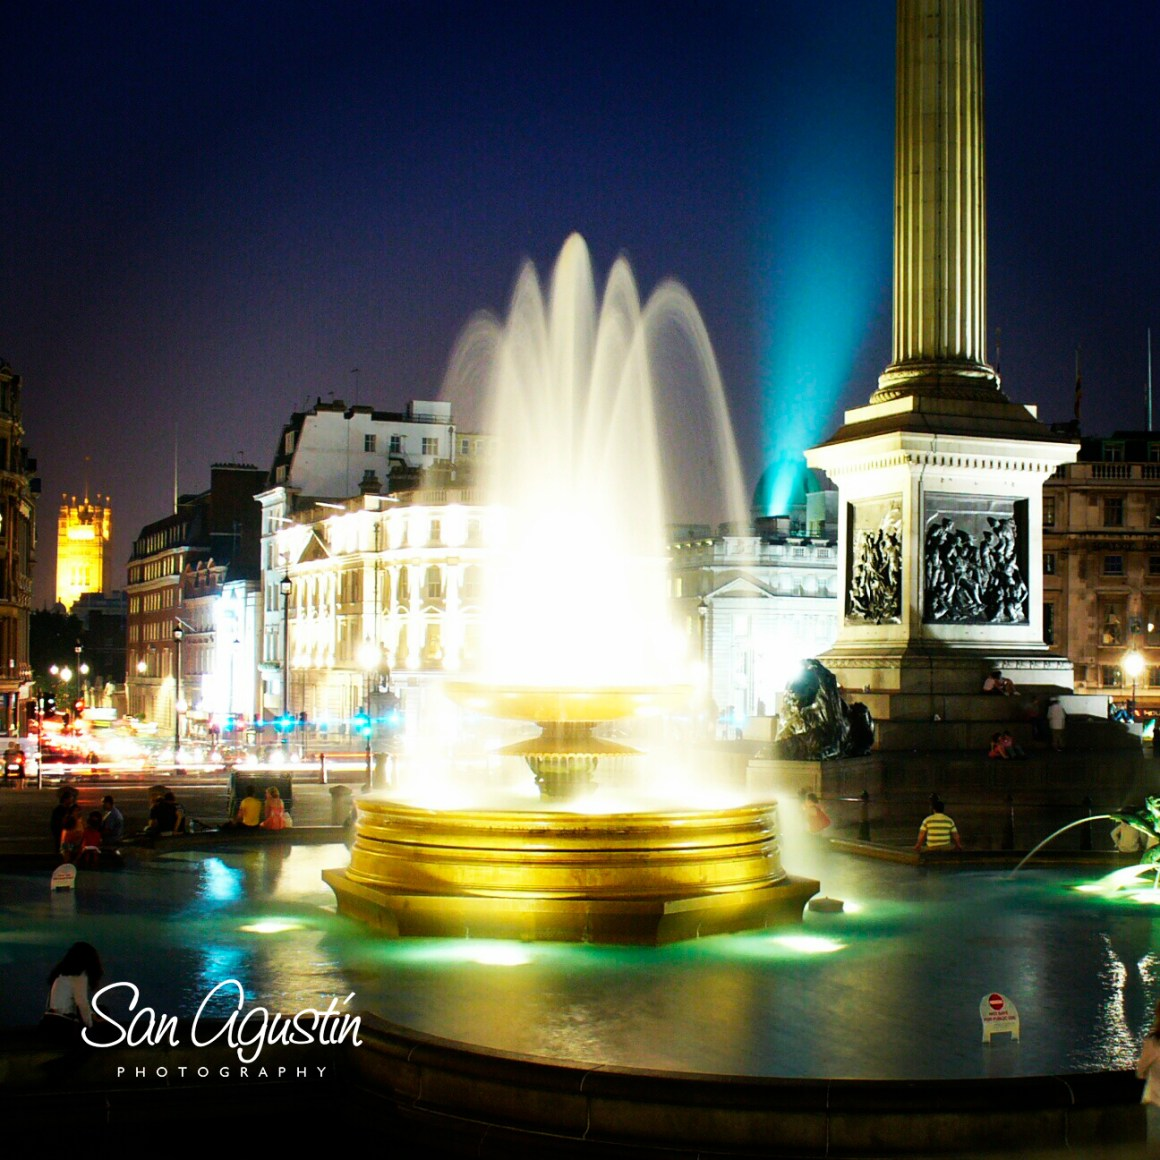 trafalgar square london sanagustinphoto